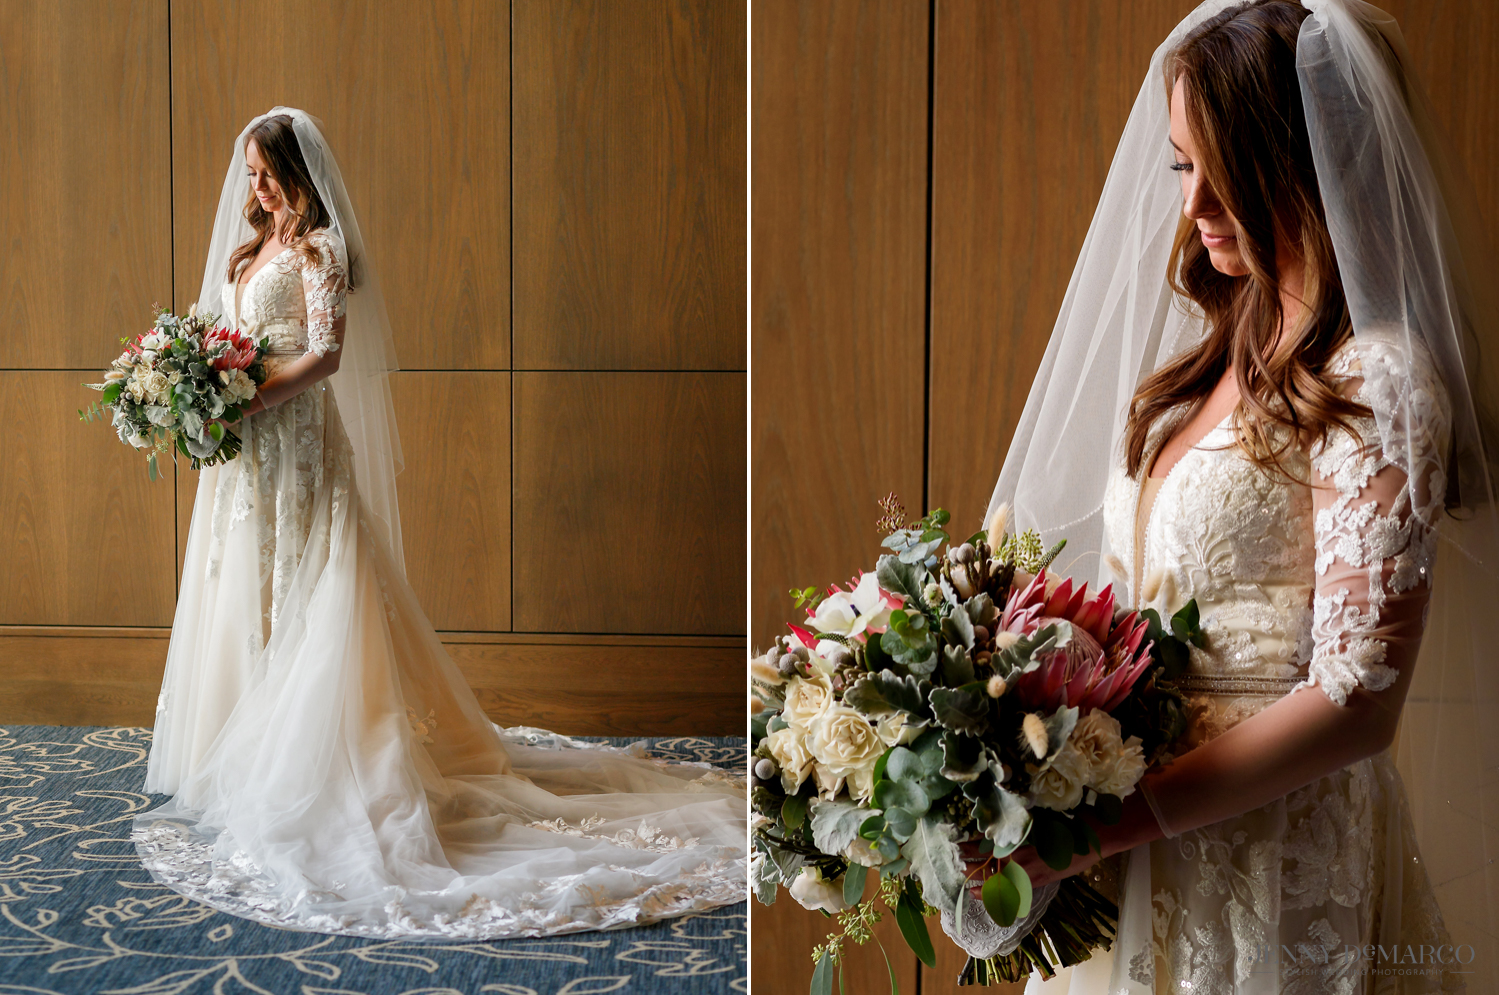 Bride holding flower bouquet in wedding dress